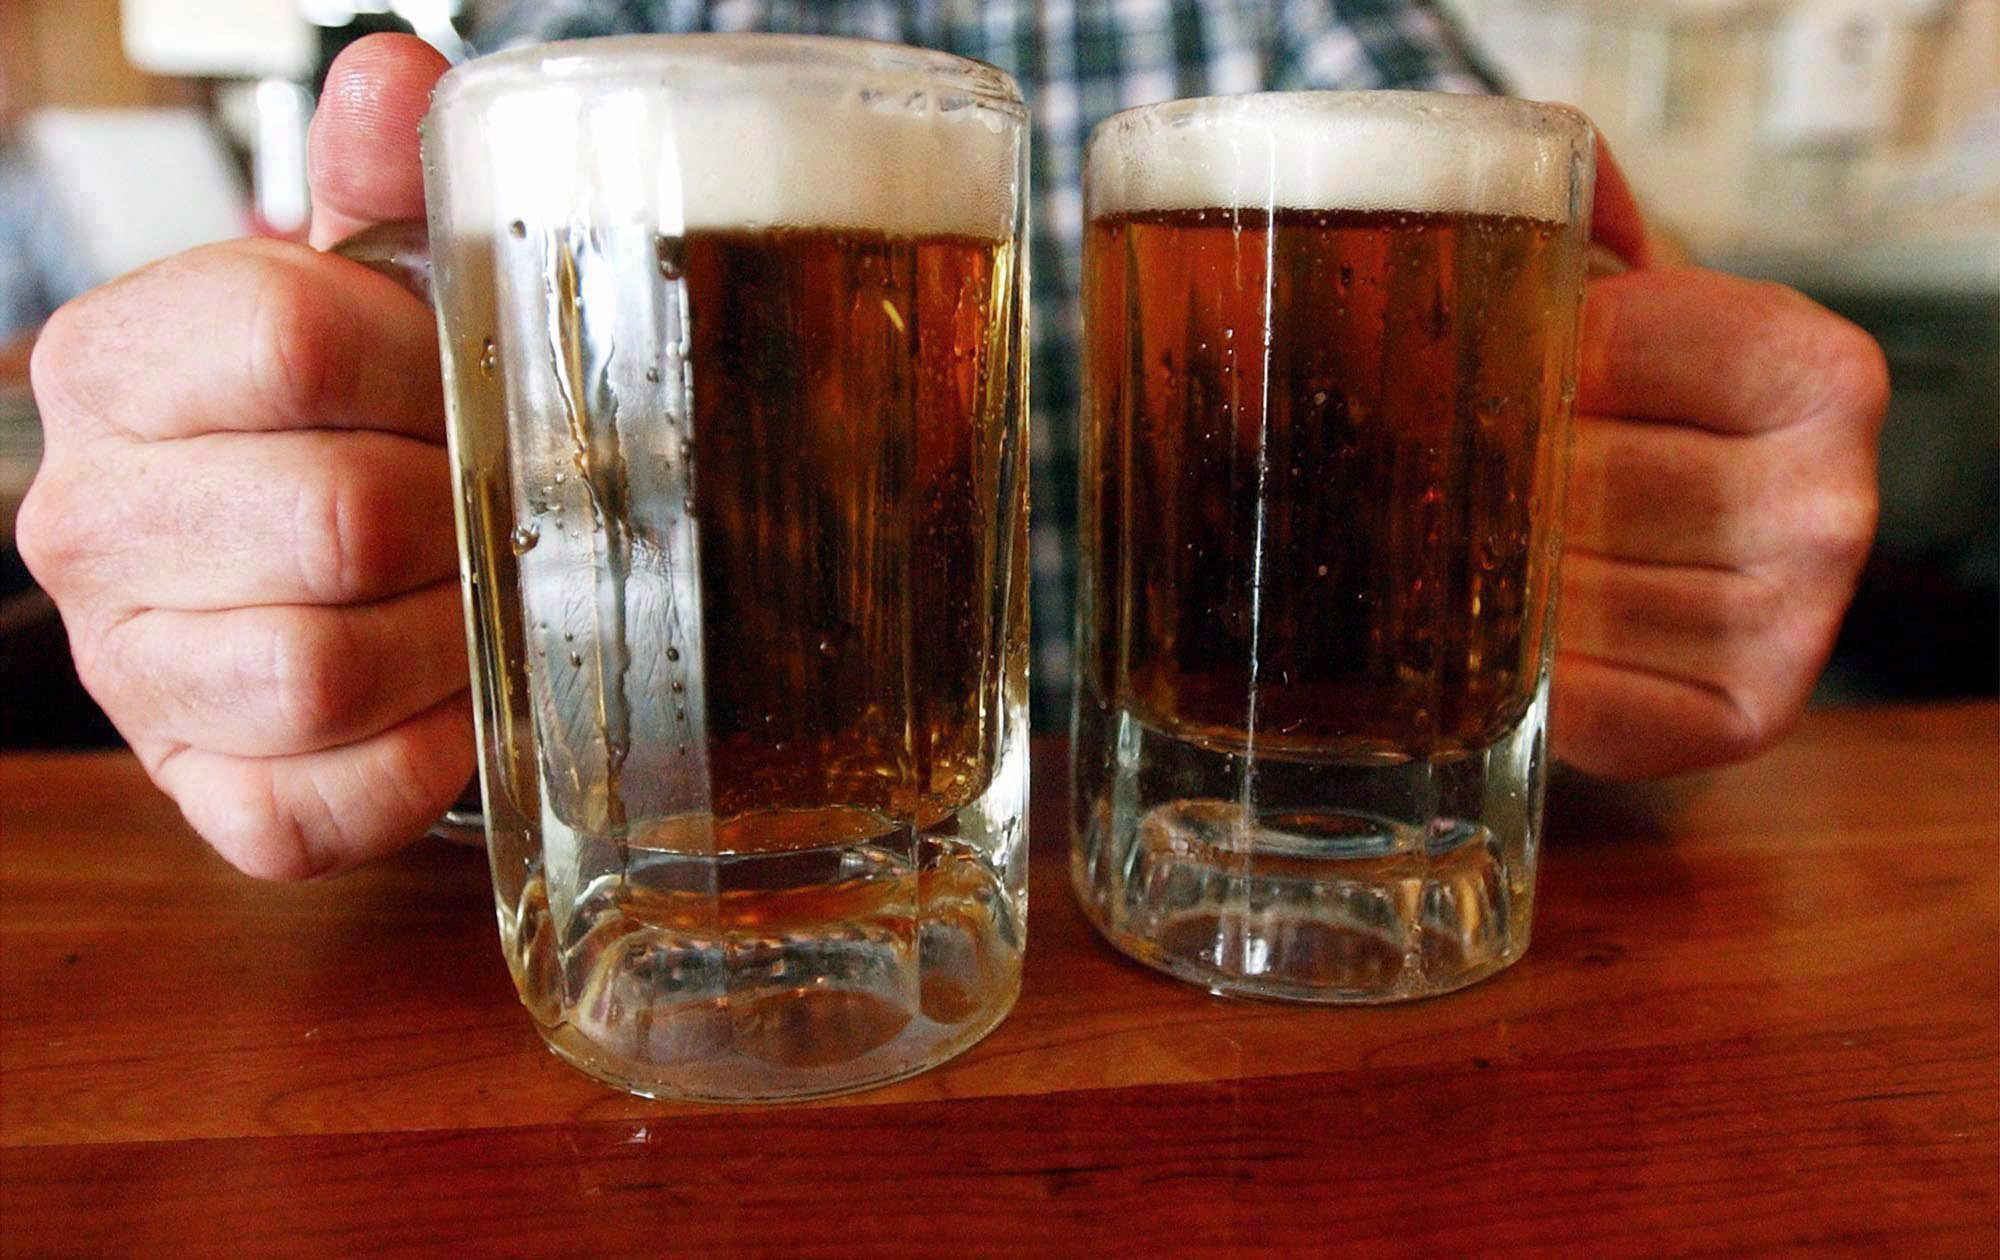 Buck-a-beer? No dice, say Ottawa brewers